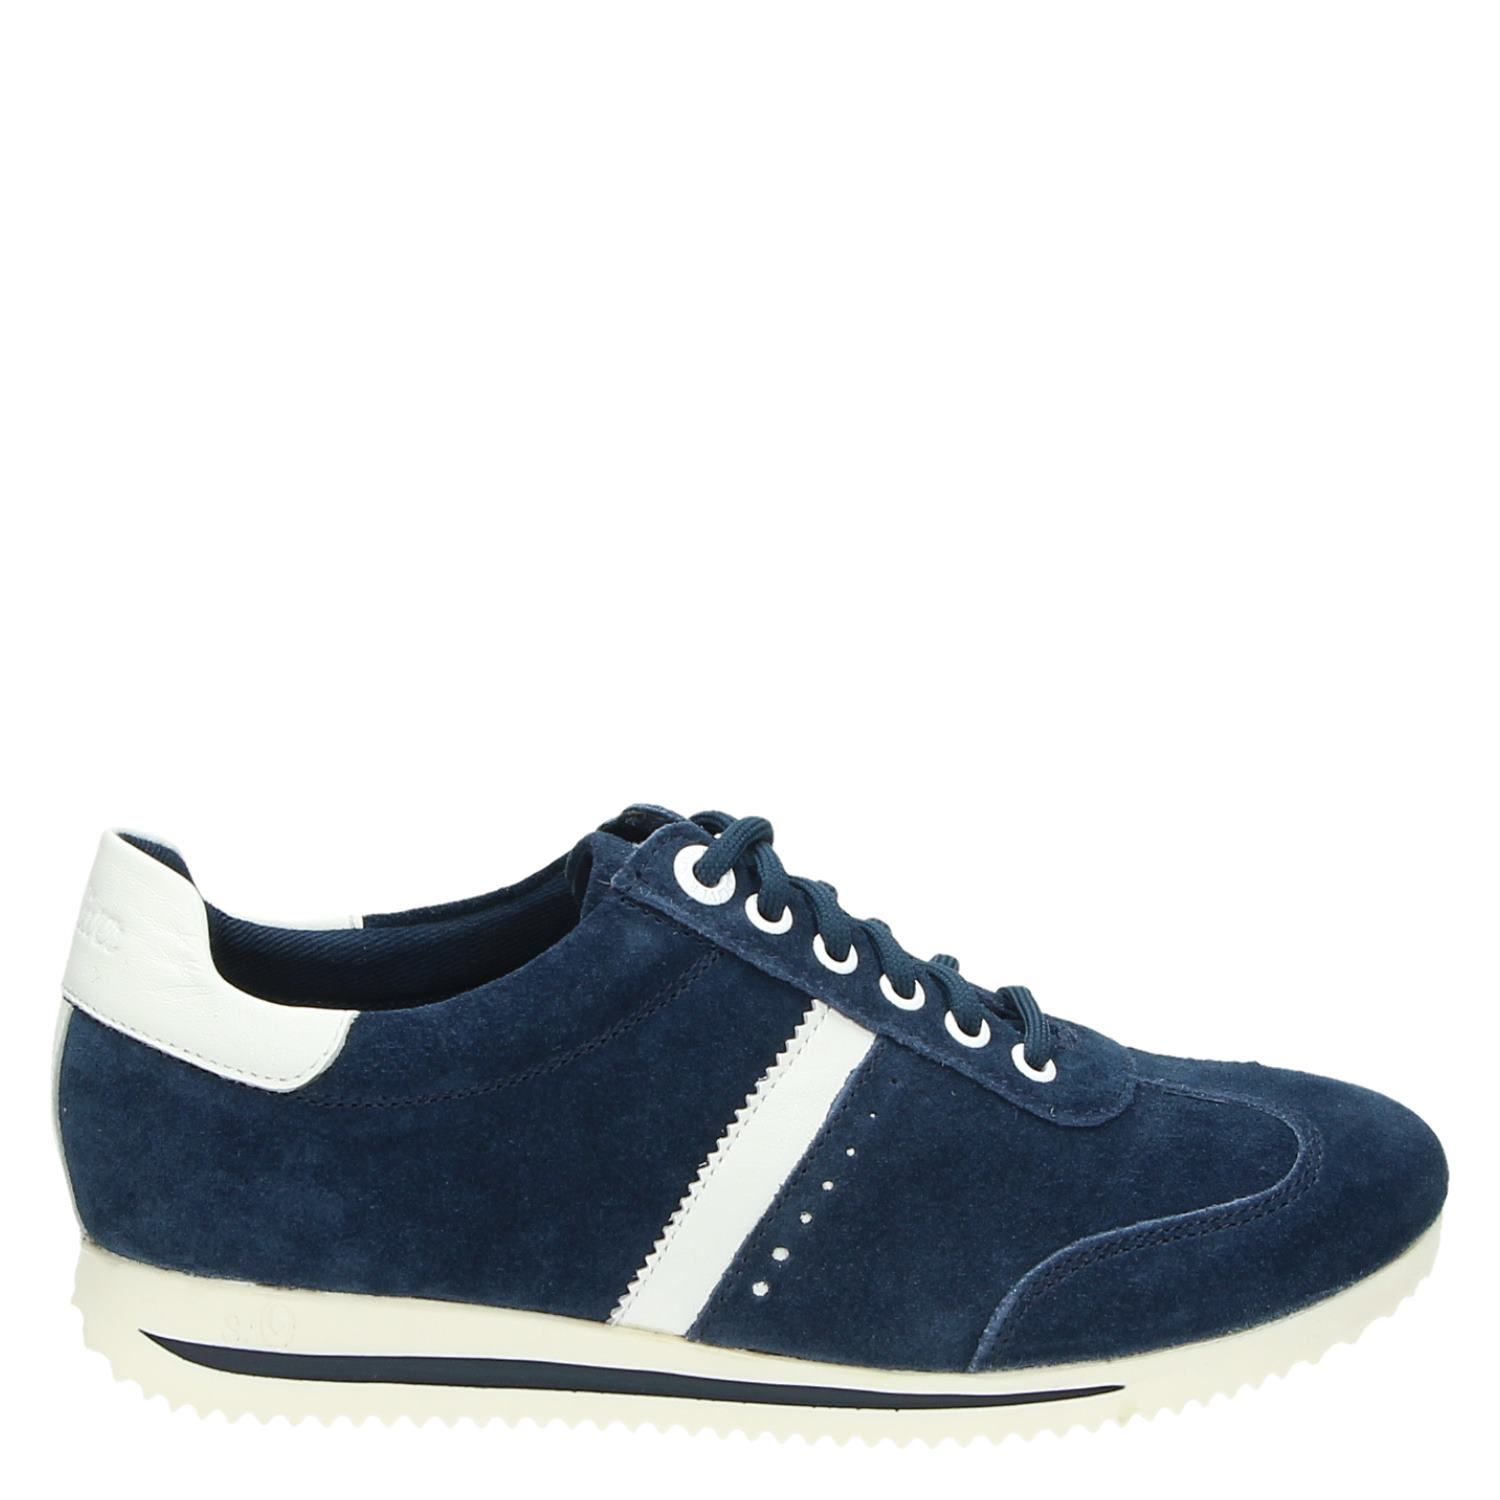 a8fe5261bbb S.Oliver dames lage sneakers blauw